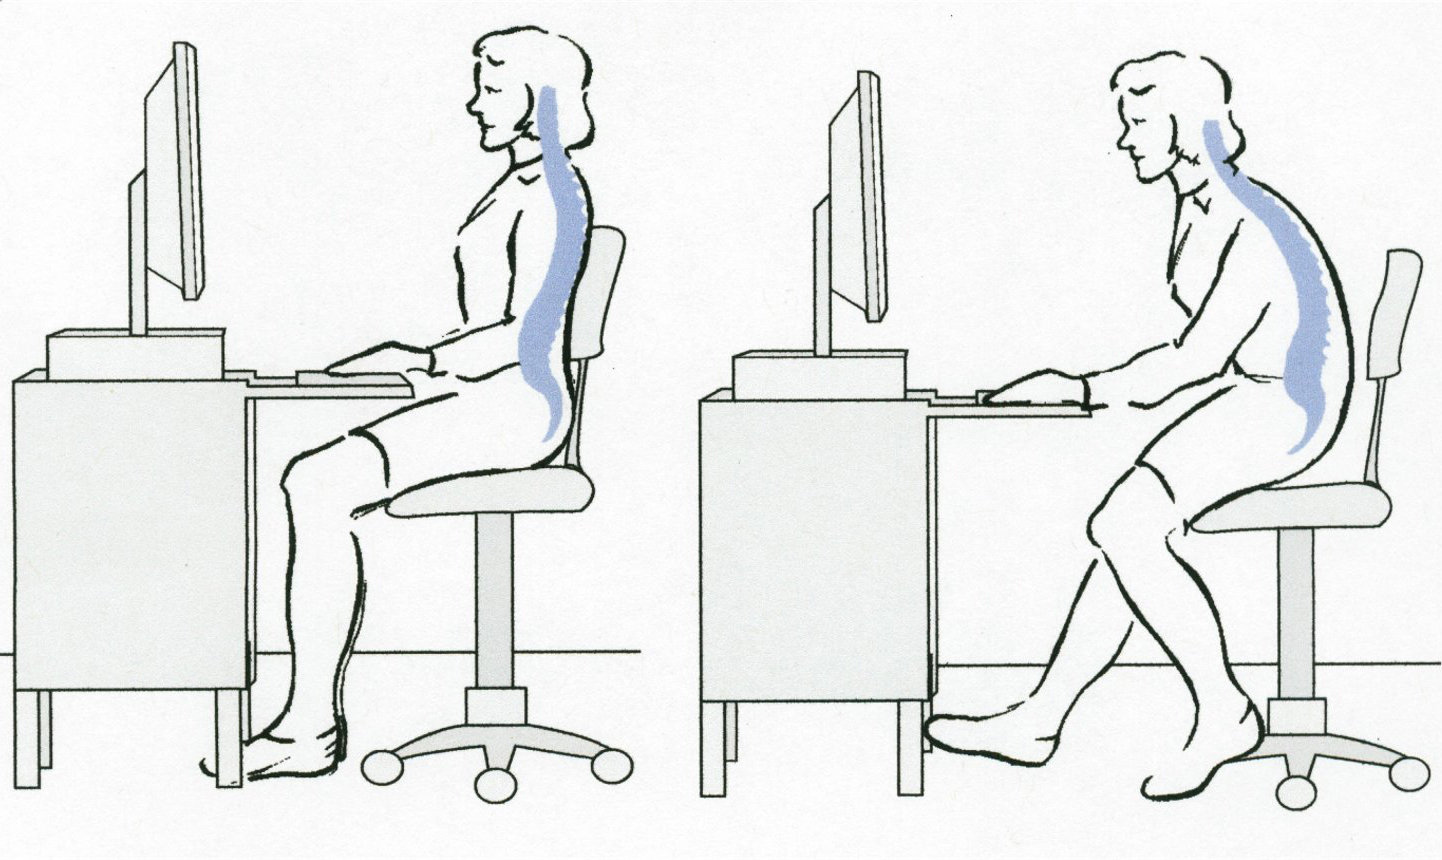 bad posture in chair design terms fix your sit preventing back pain at work fitness for